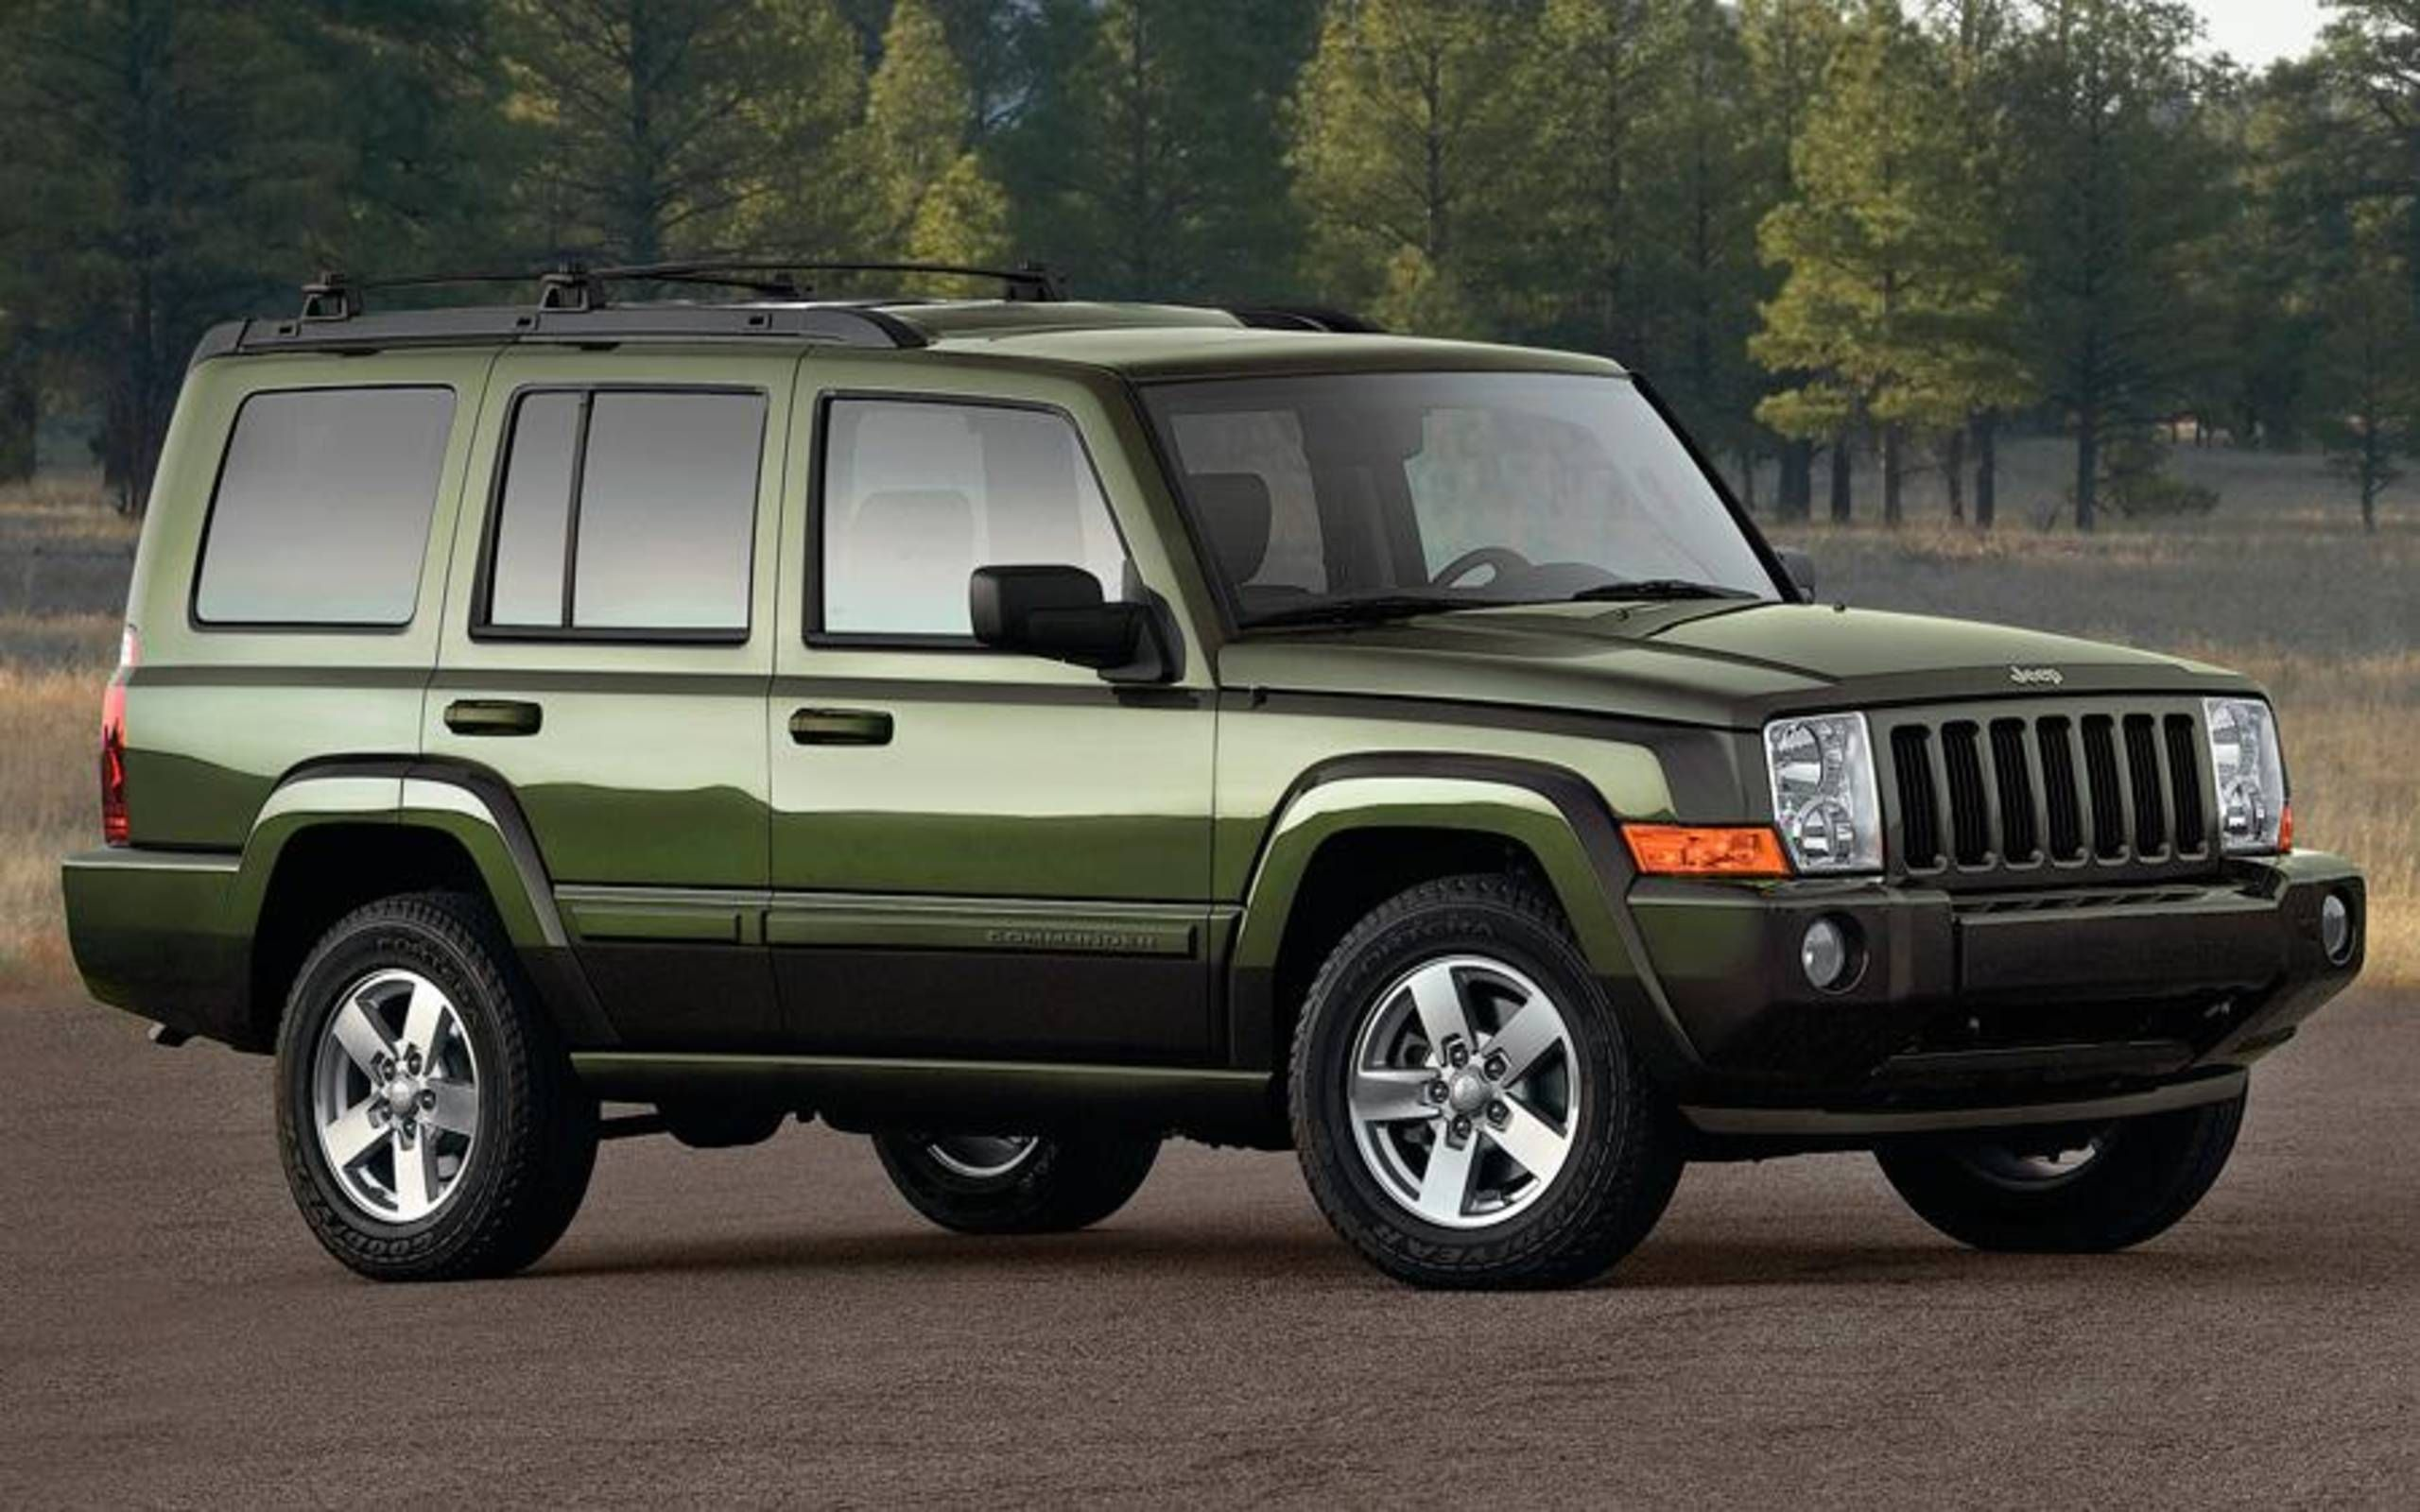 Jeep Grand Cherokee Commander 4wd Problems Unrelated To N23 Recall Chrysler Says